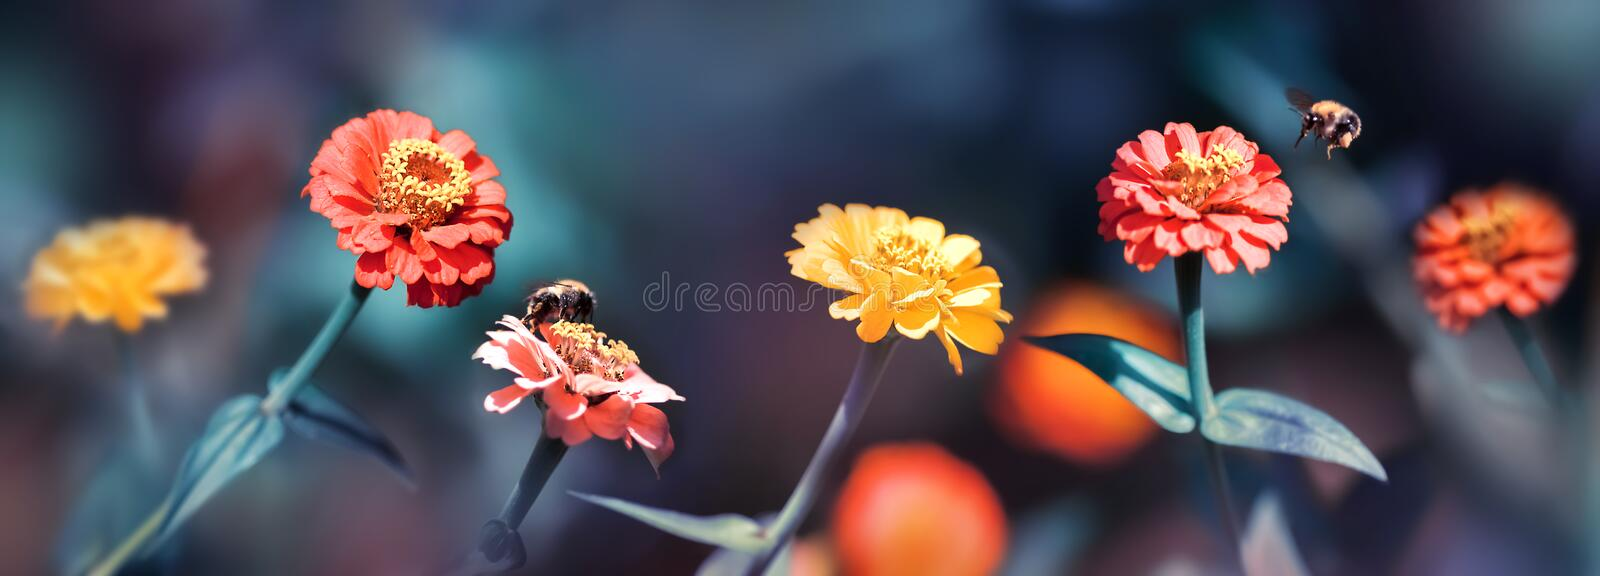 Multi-colored summer flowers and bumblebees in a fairy garden. Banner format. Artistic summer spring image. Multi-colored summer flowers and bumblebees in a royalty free stock image